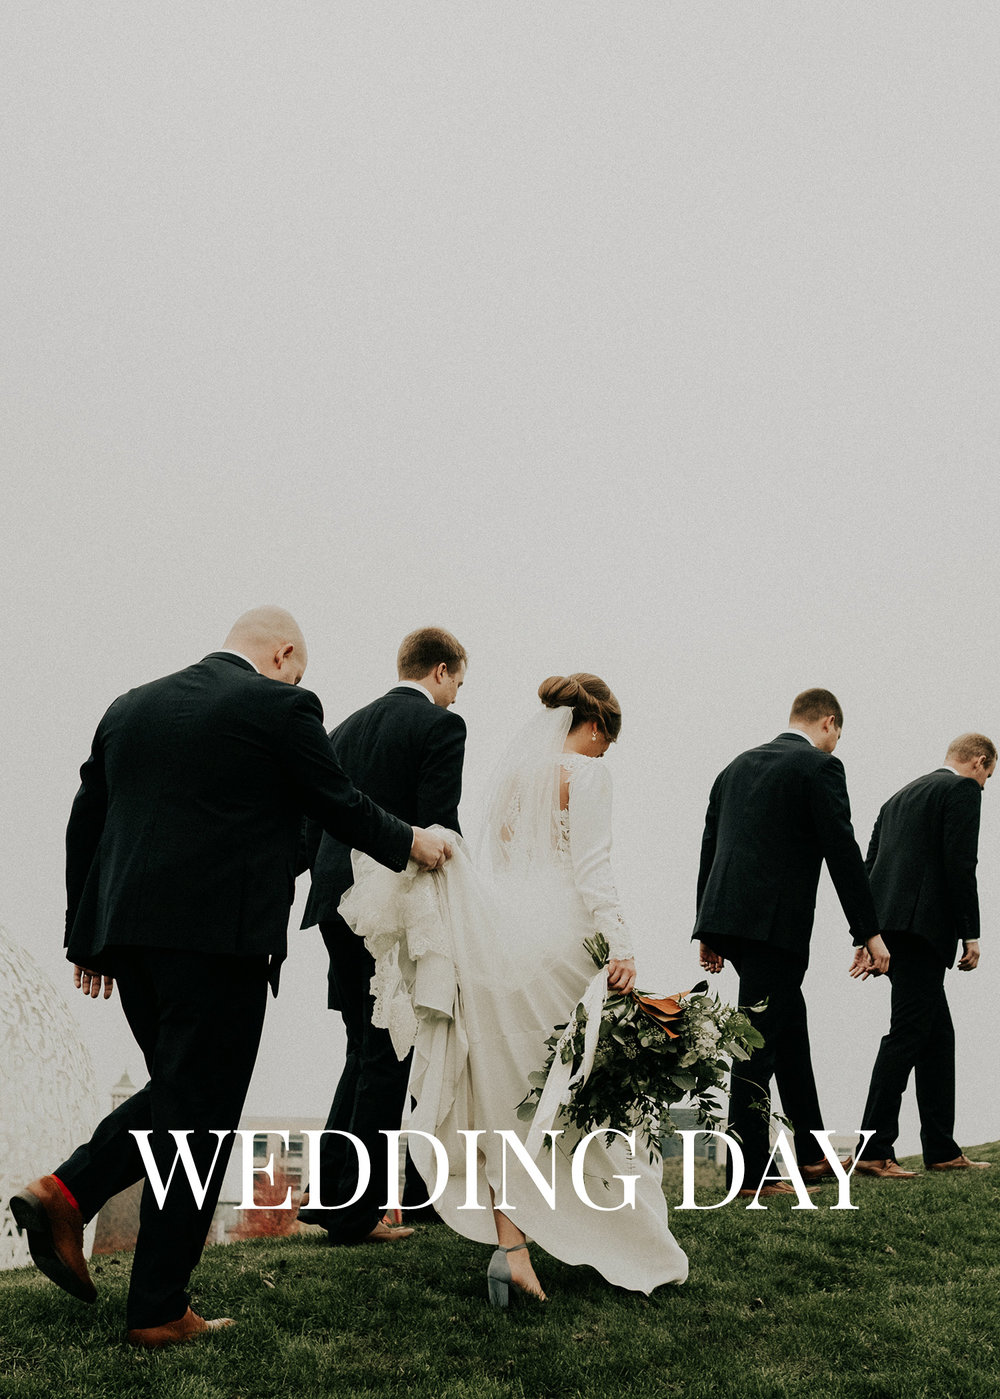 clausen-wedding-bride-groom-walking-raelyn-ramey-photography.jpg